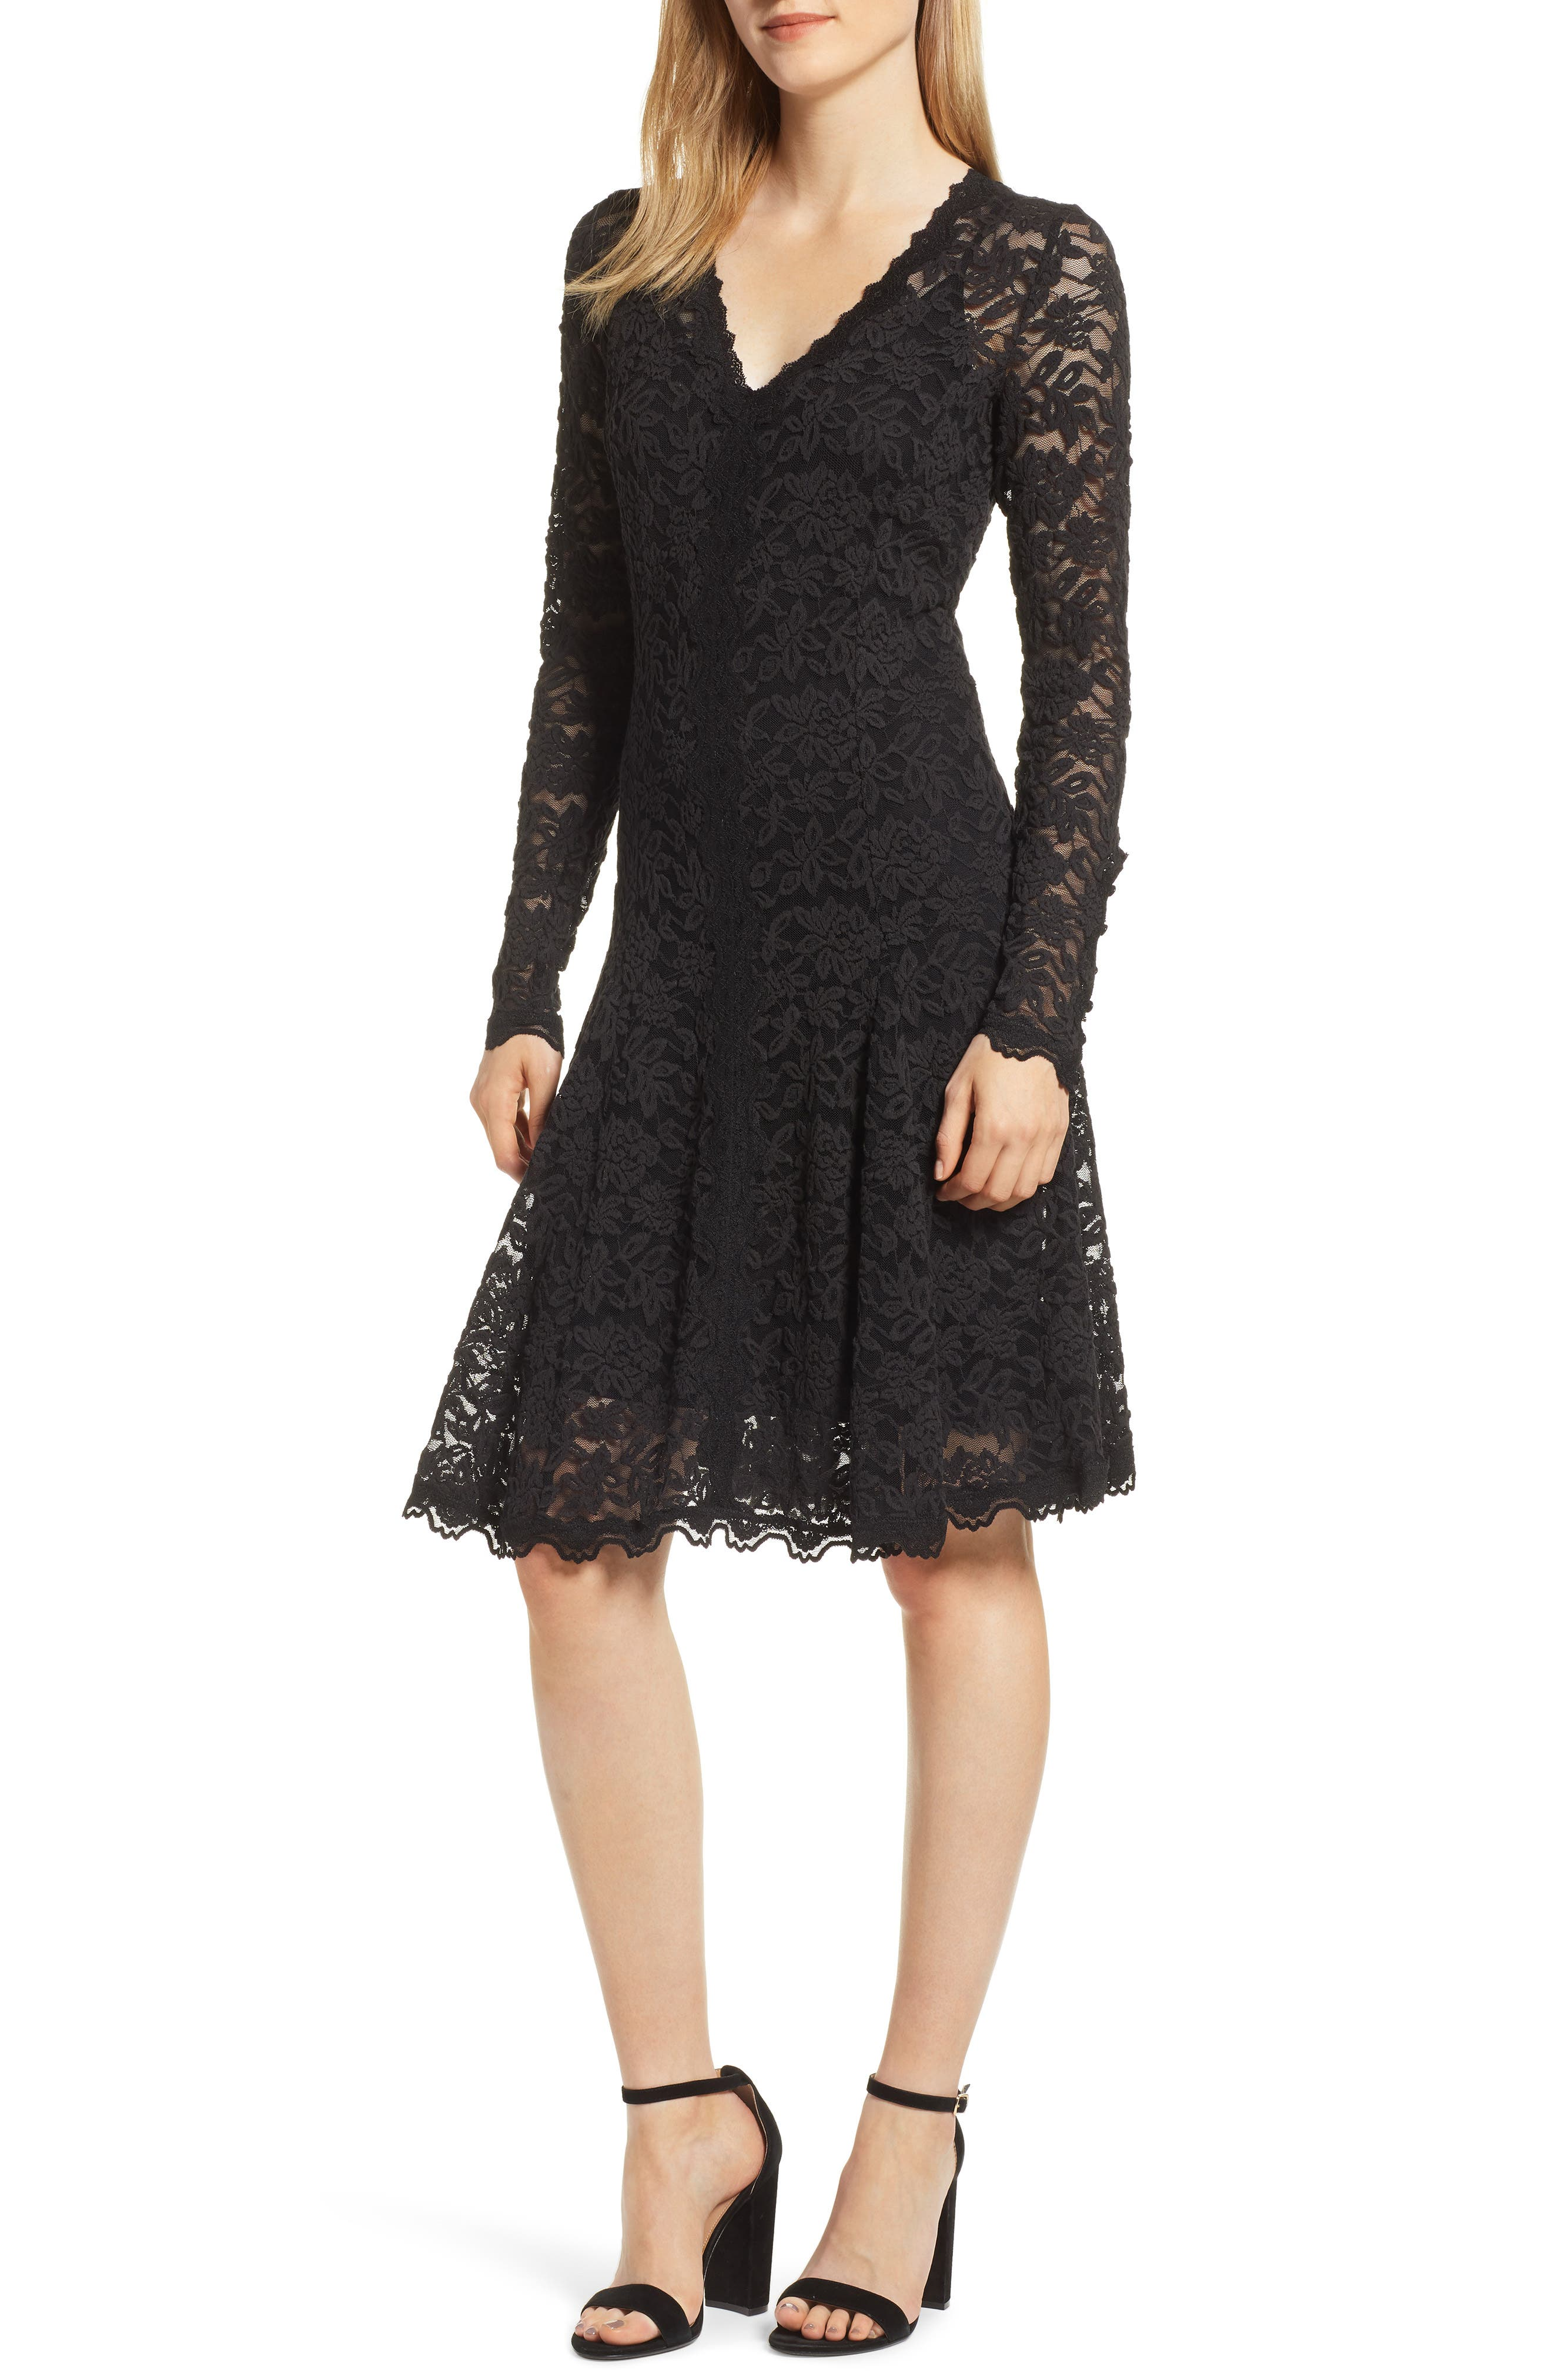 ROSEMUNDE, Delicia Fit & Flare Lace Dress, Main thumbnail 1, color, BLACK